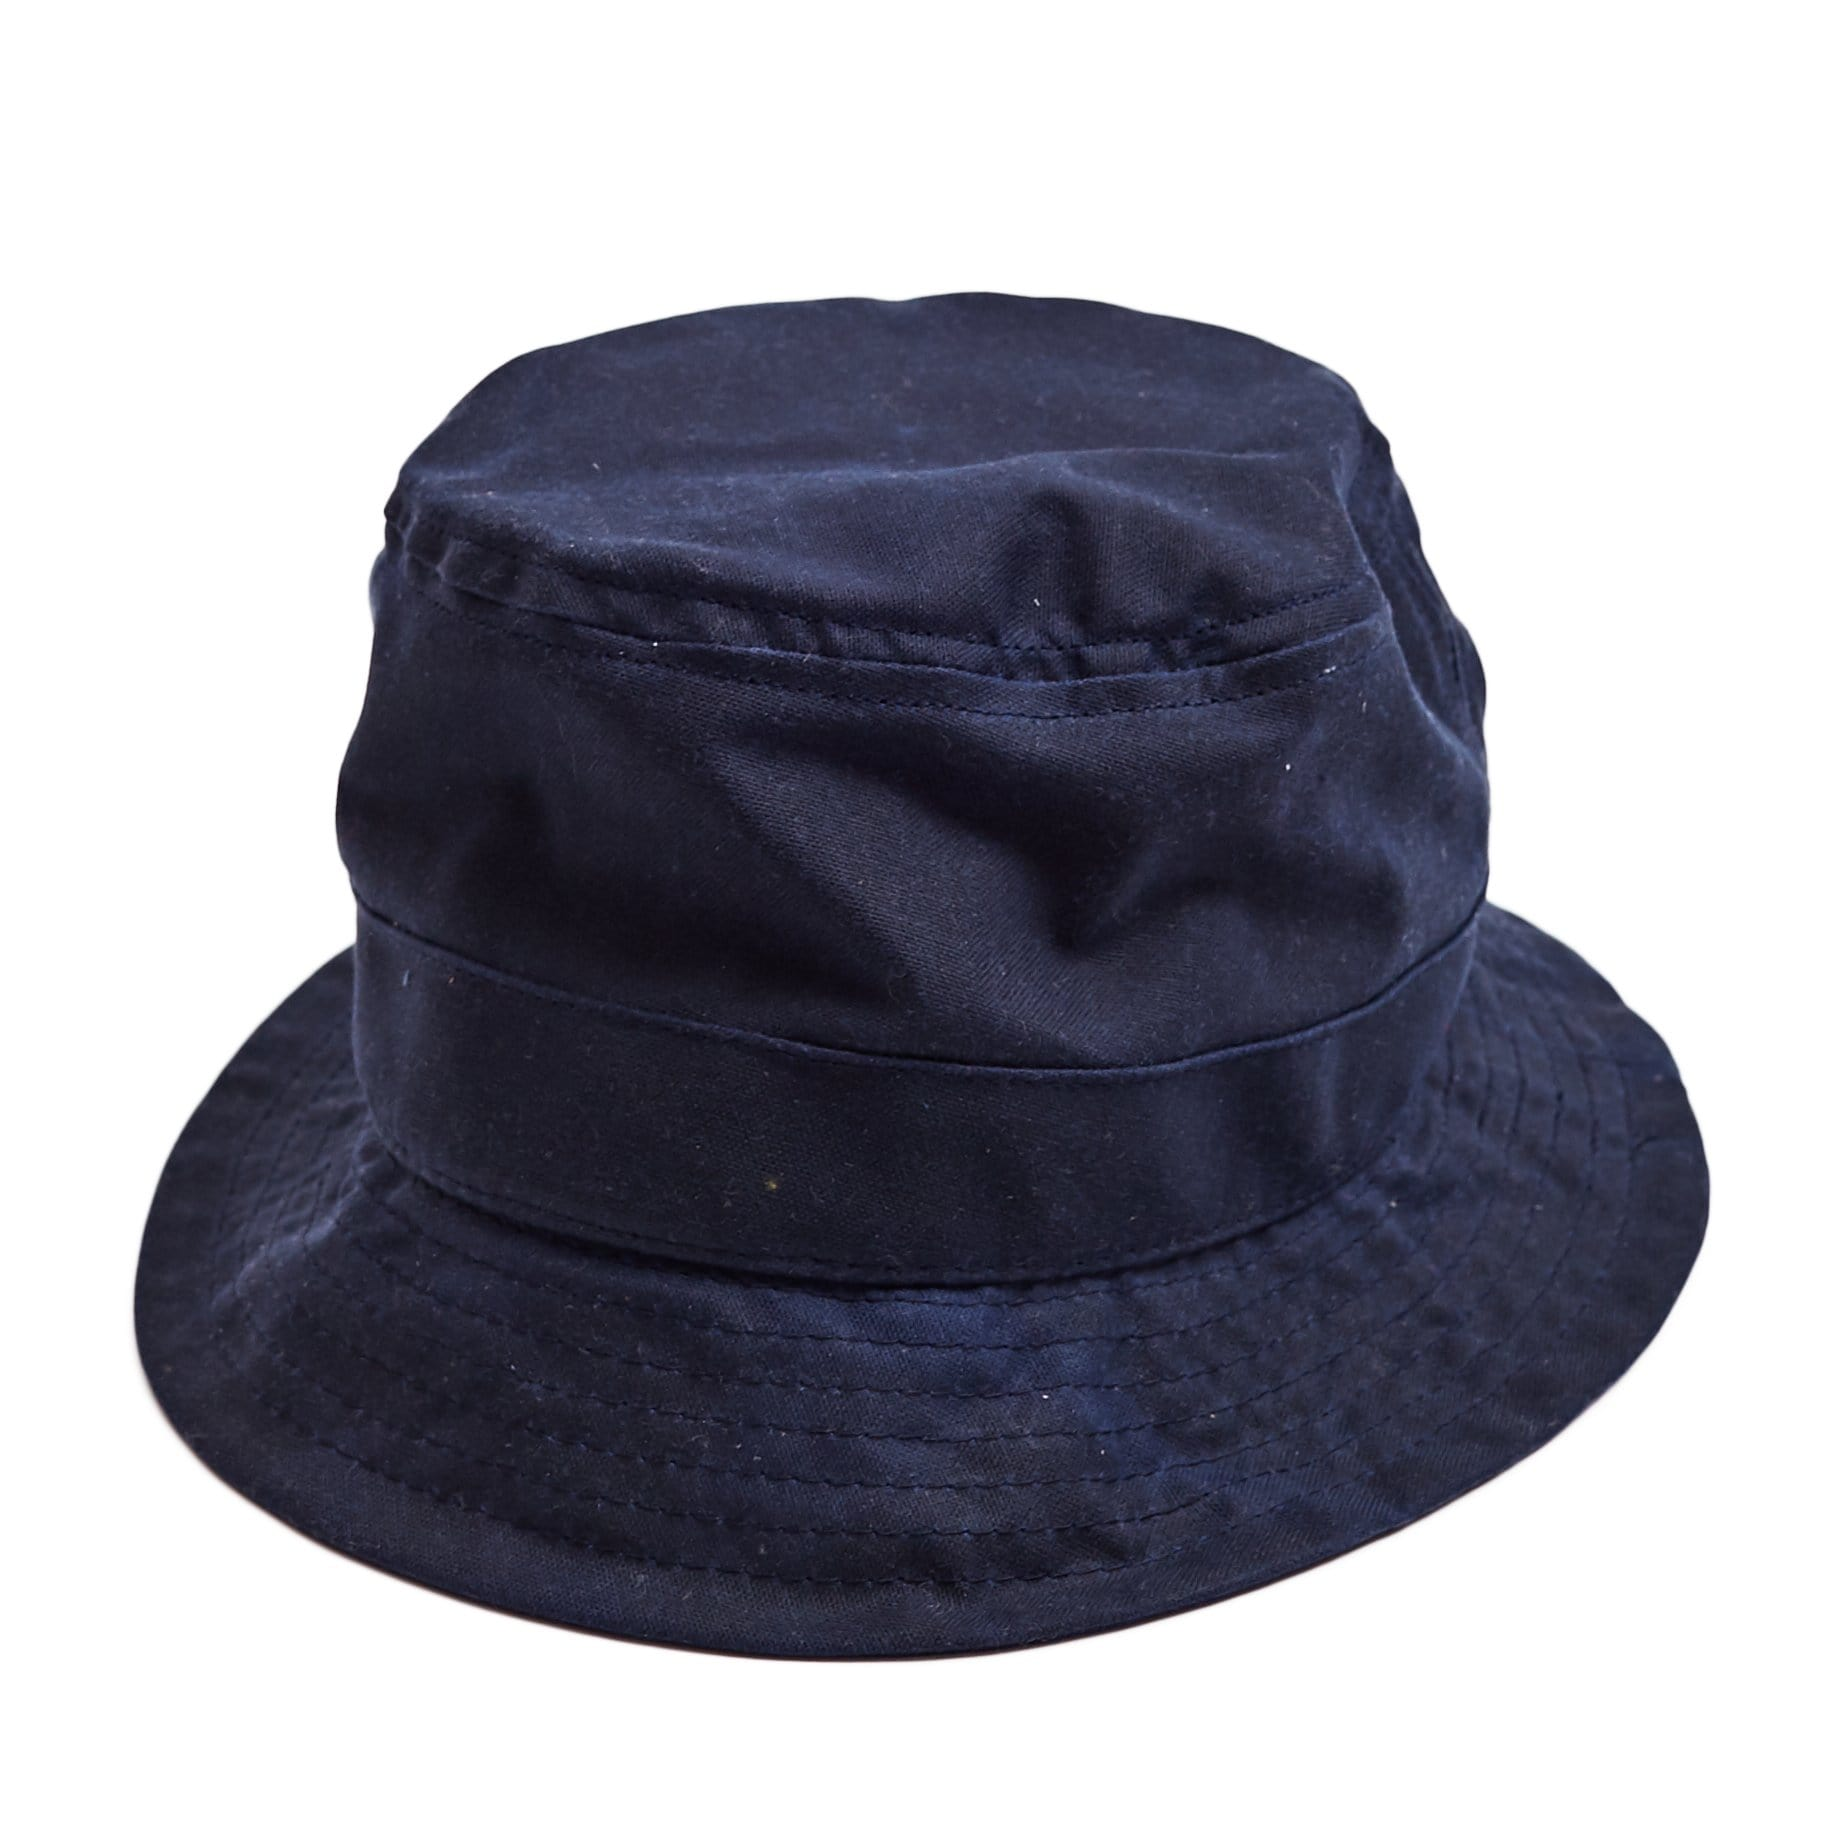 Navy Bucket Hat Wax 6.25oz